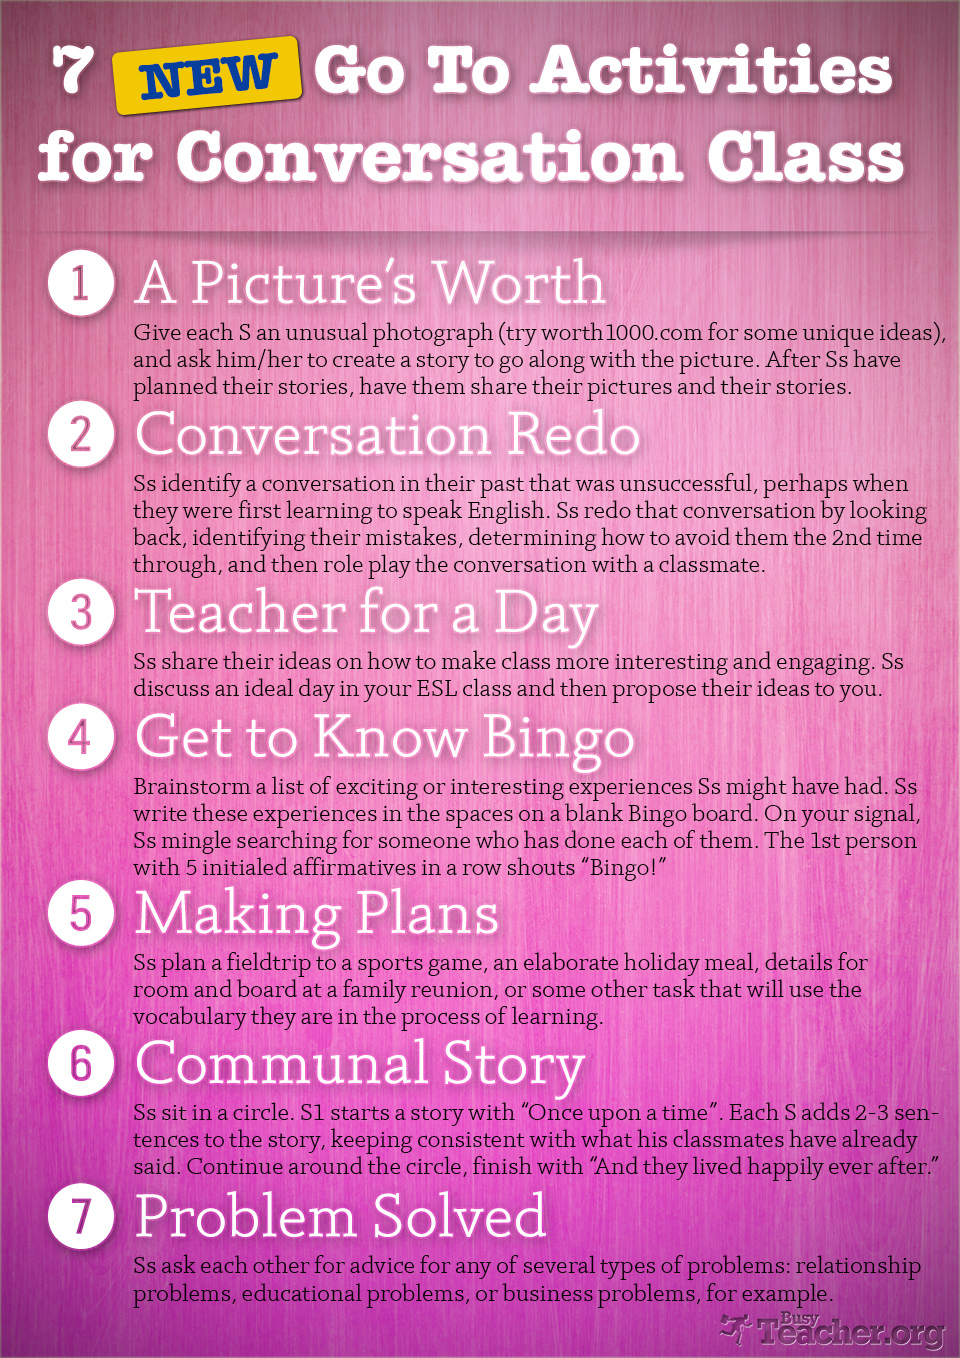 7 New Go To Activities for Conversation Class: Poster